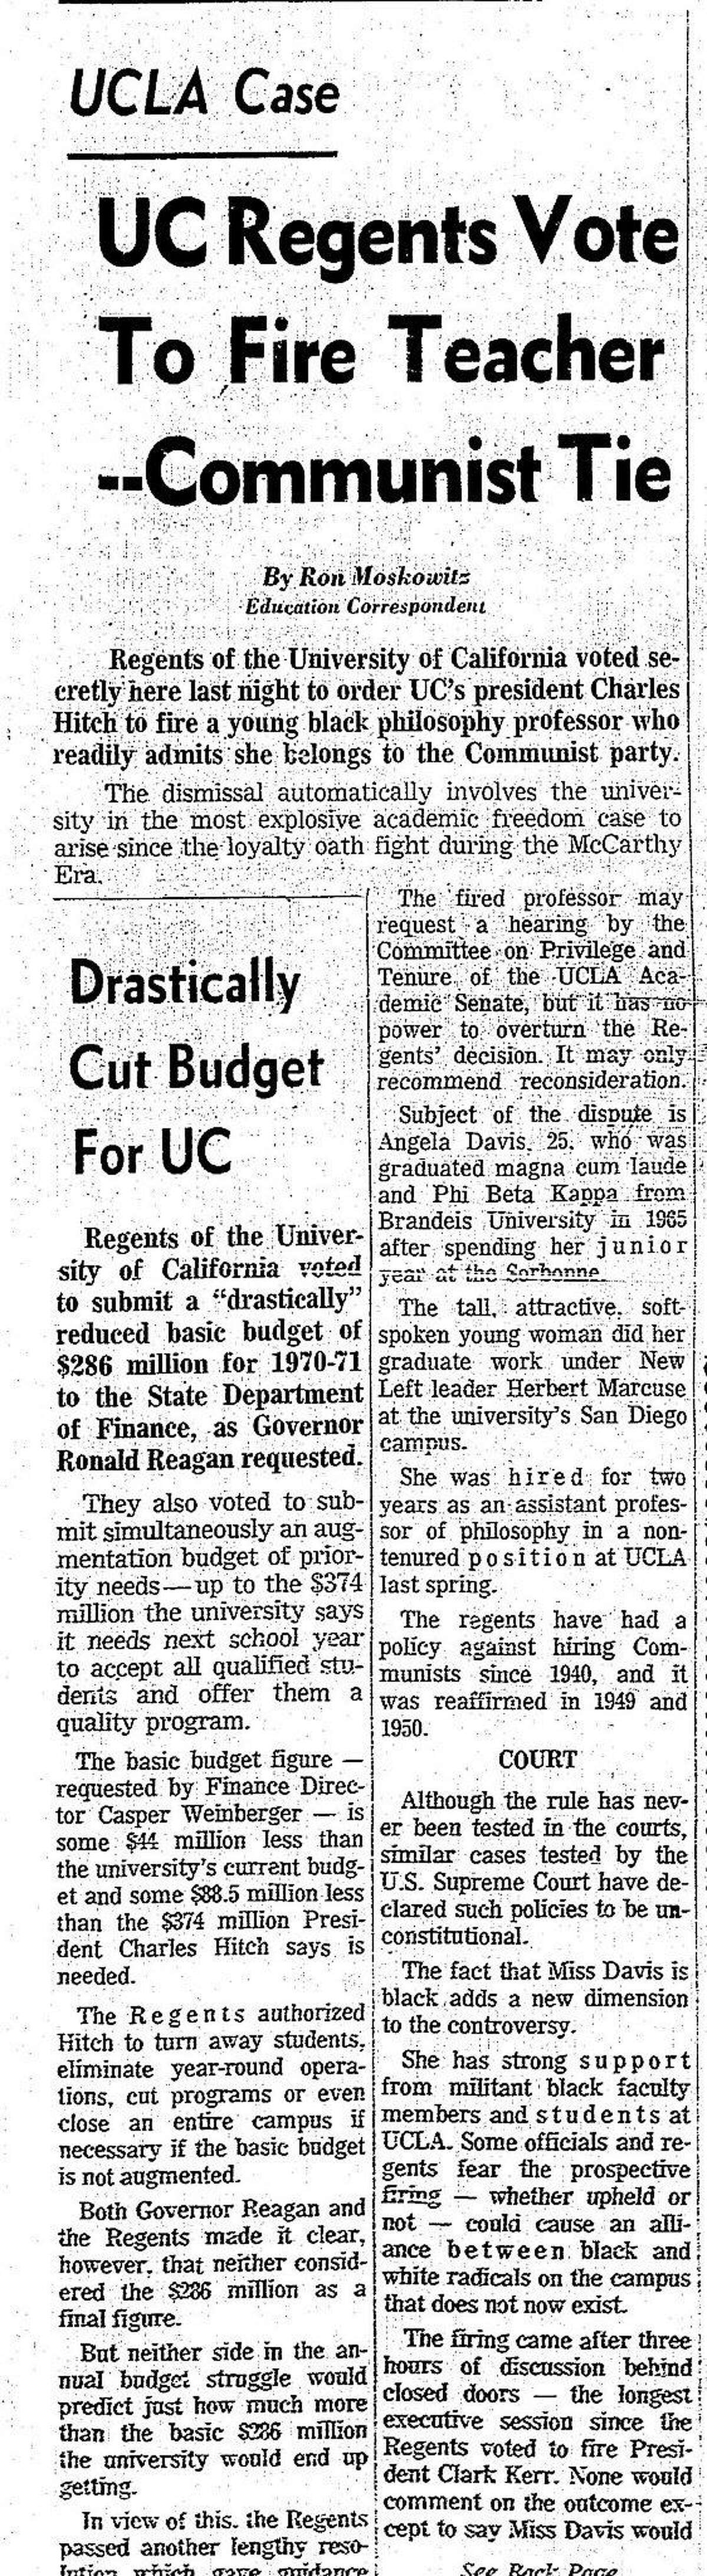 September 20, 1969 Chronicle coverage of University of California Board of Regents recommends that Angela Davis be fired